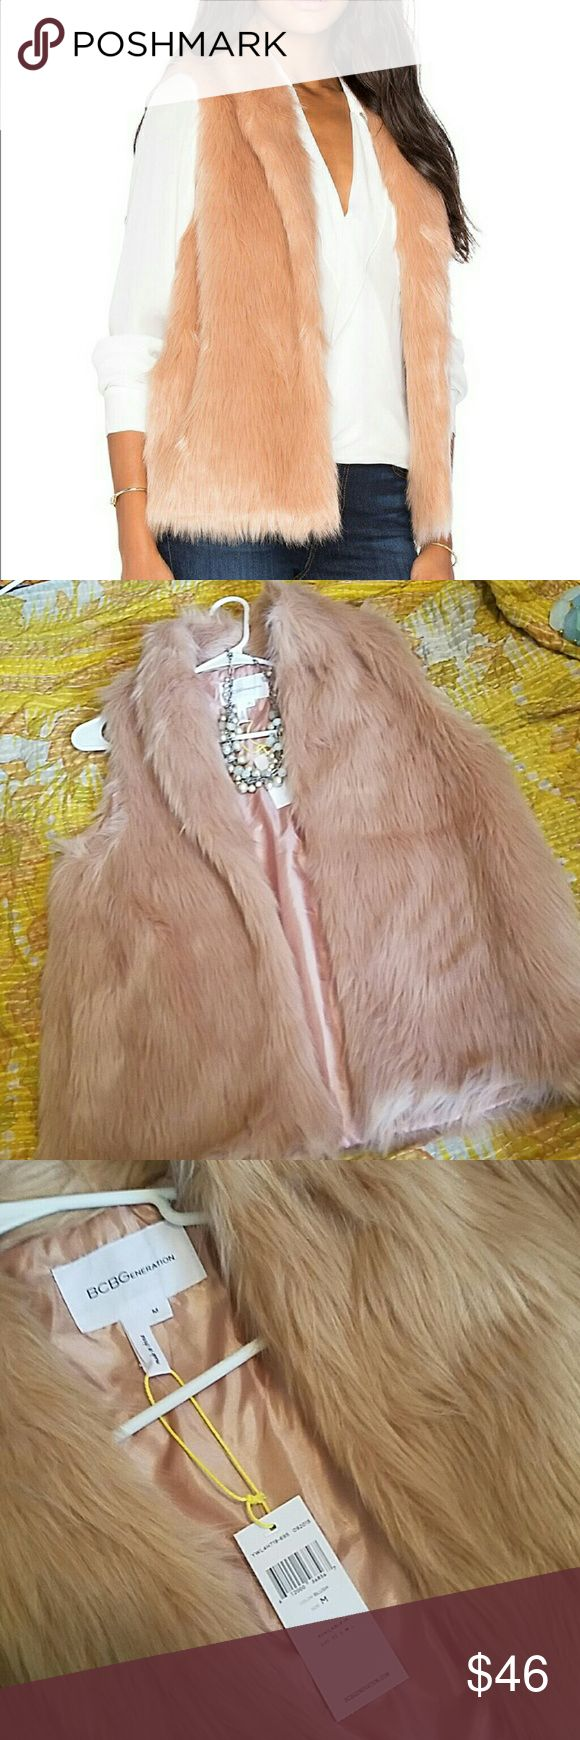 NWT Blush BCBG faux fur vest adorable and comfortable BCBGeneration vest, pairs perfectly with anything. BCBGeneration Jackets & Coats Vests